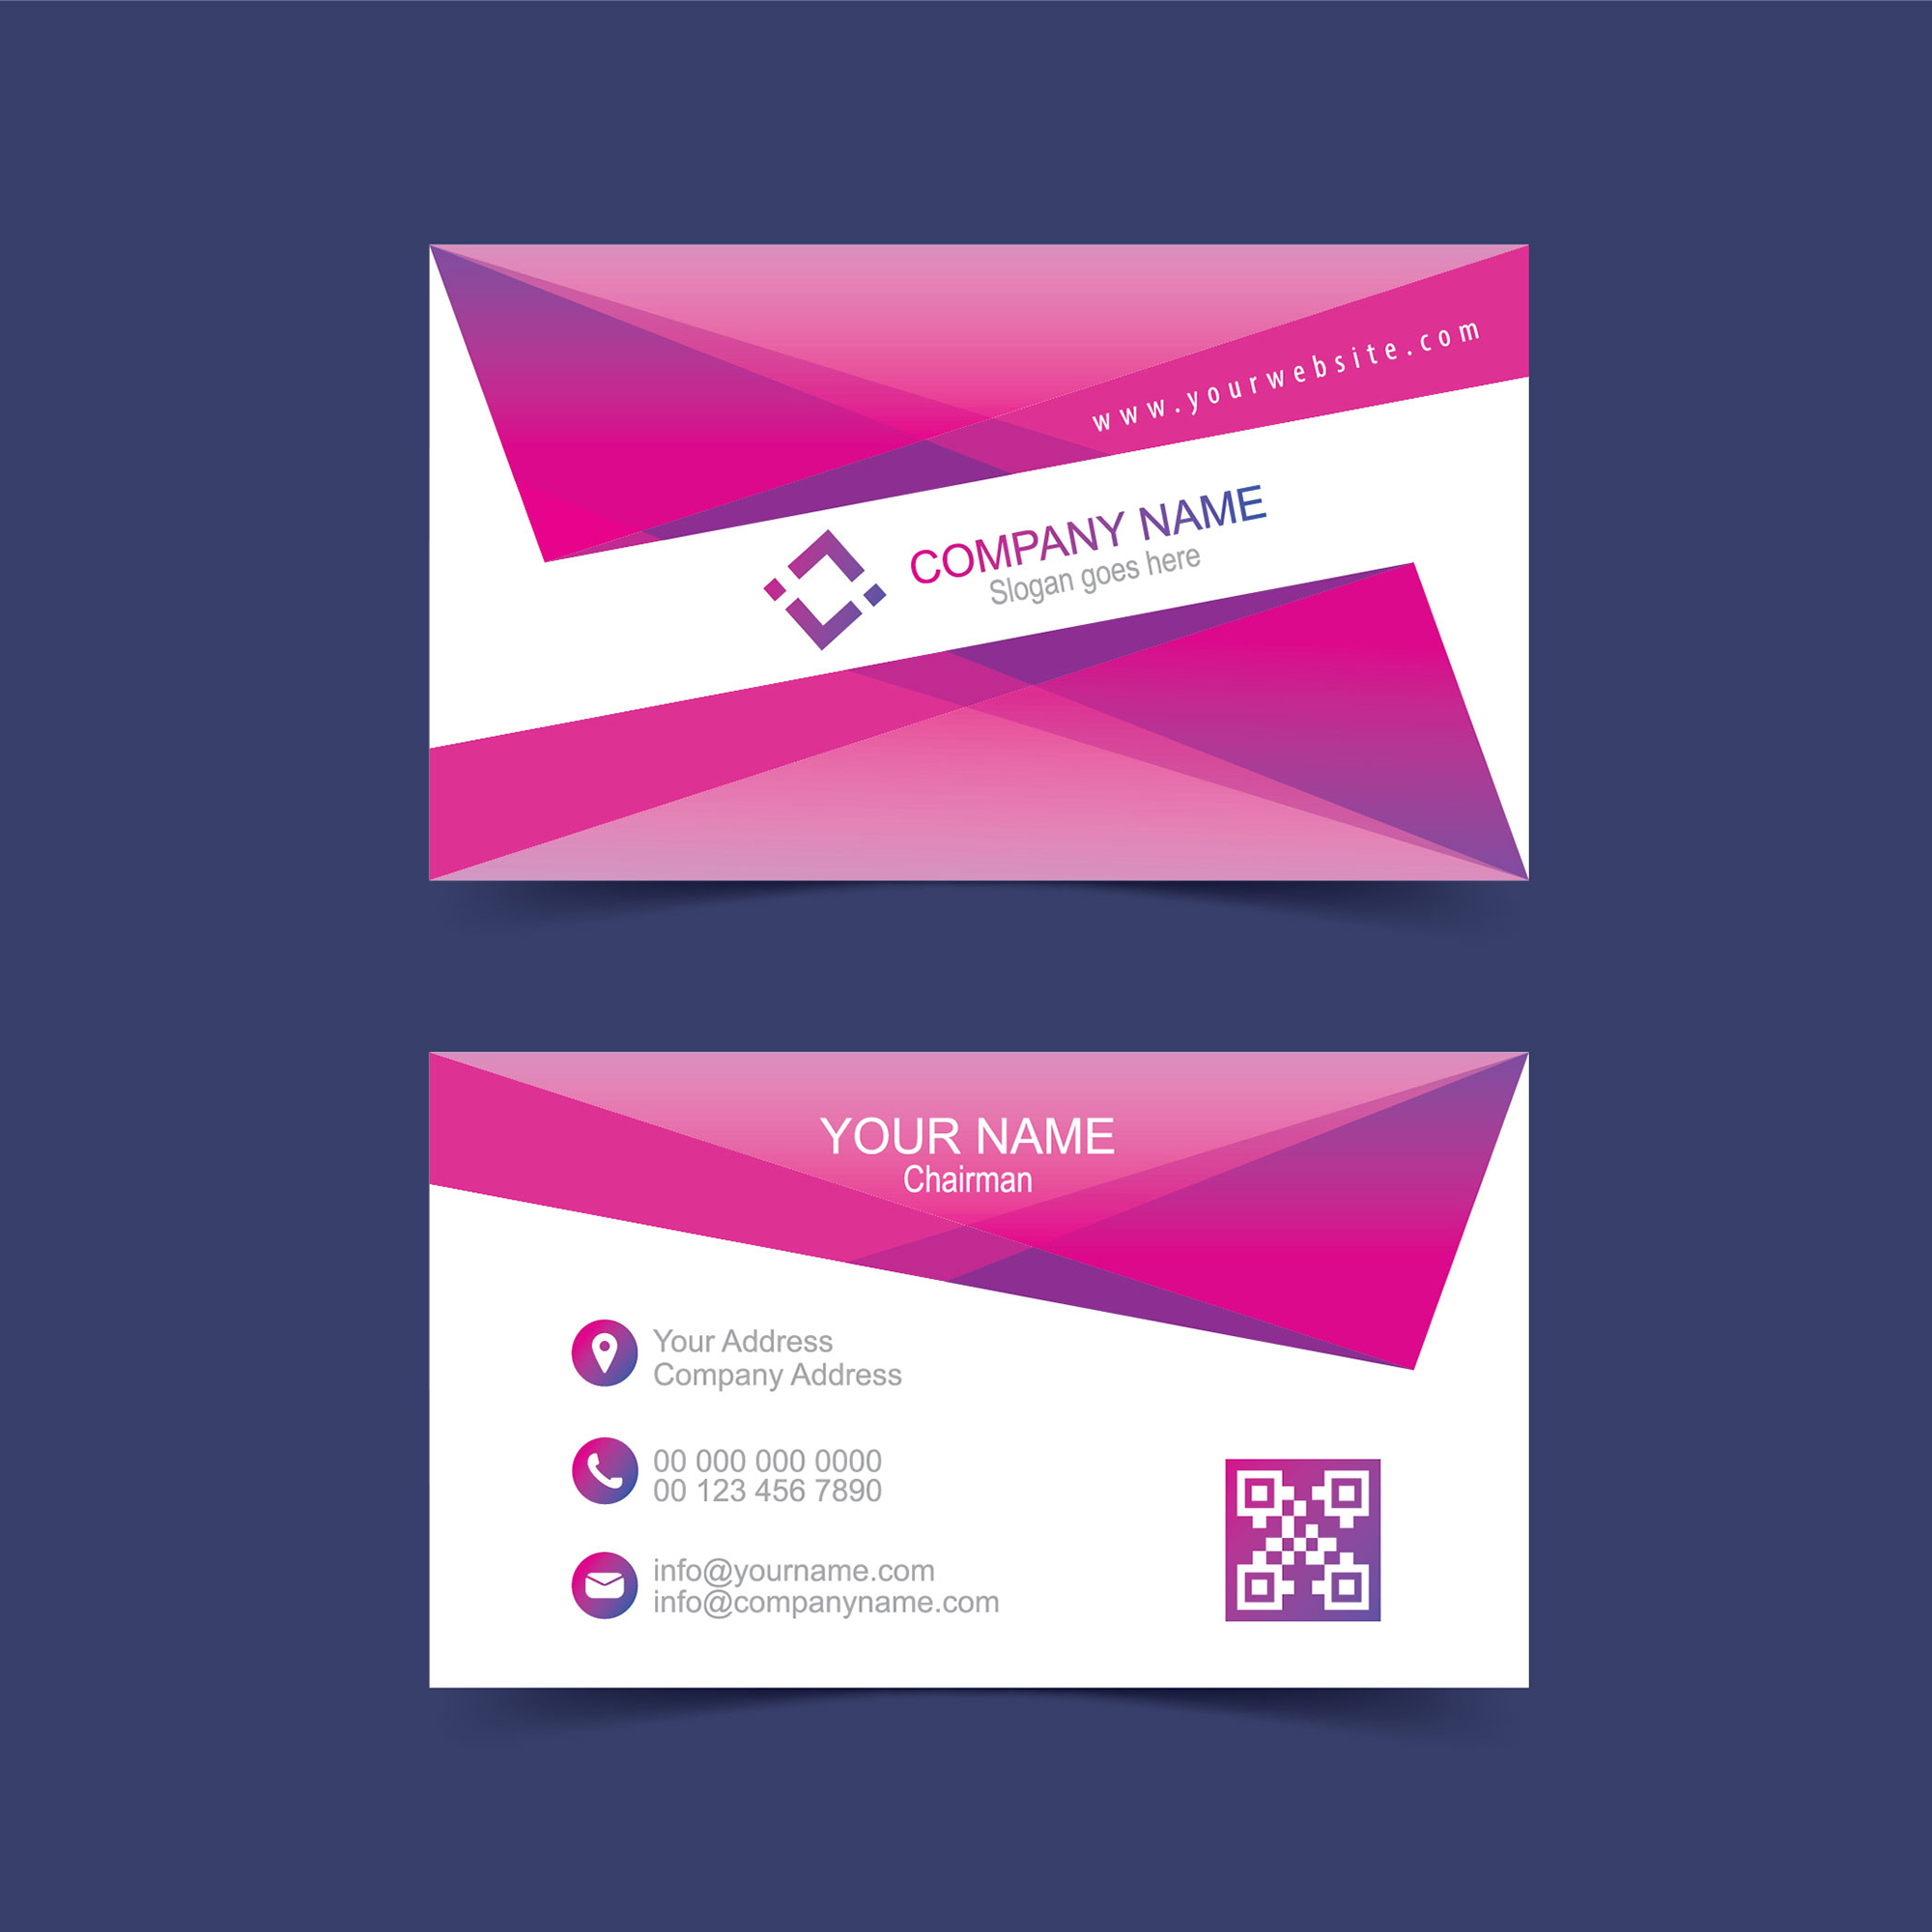 Modern visiting card design free download wisxi business card business cards business card design business card template design templates cheaphphosting Image collections